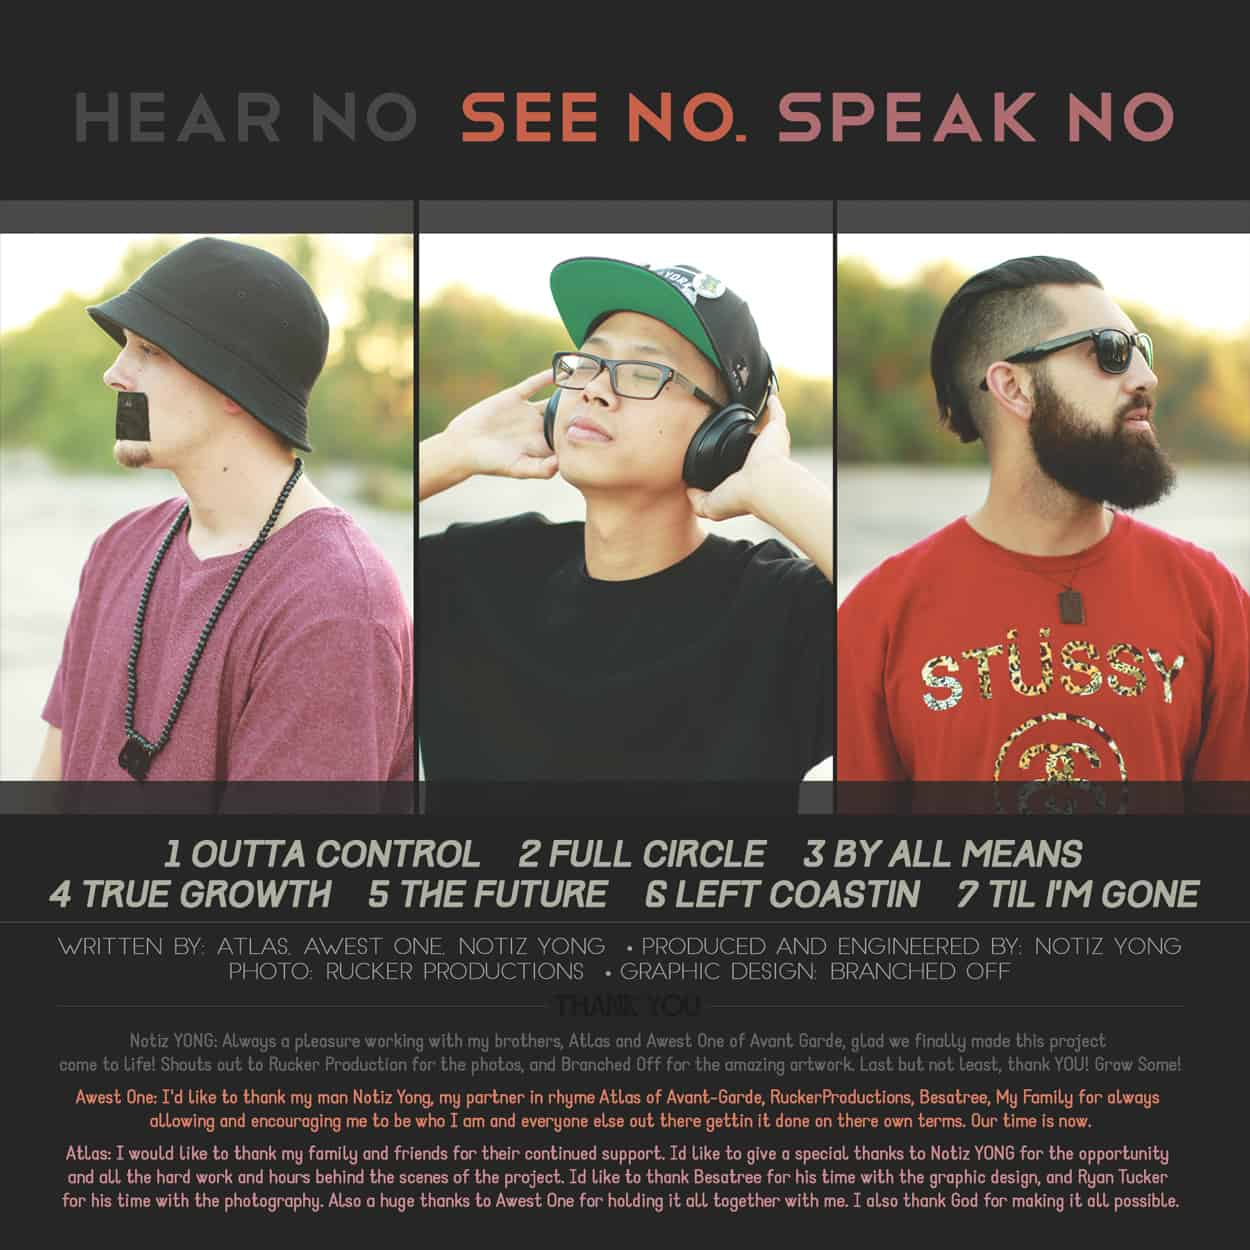 Hear No, See No, Speak No - Album Art Design